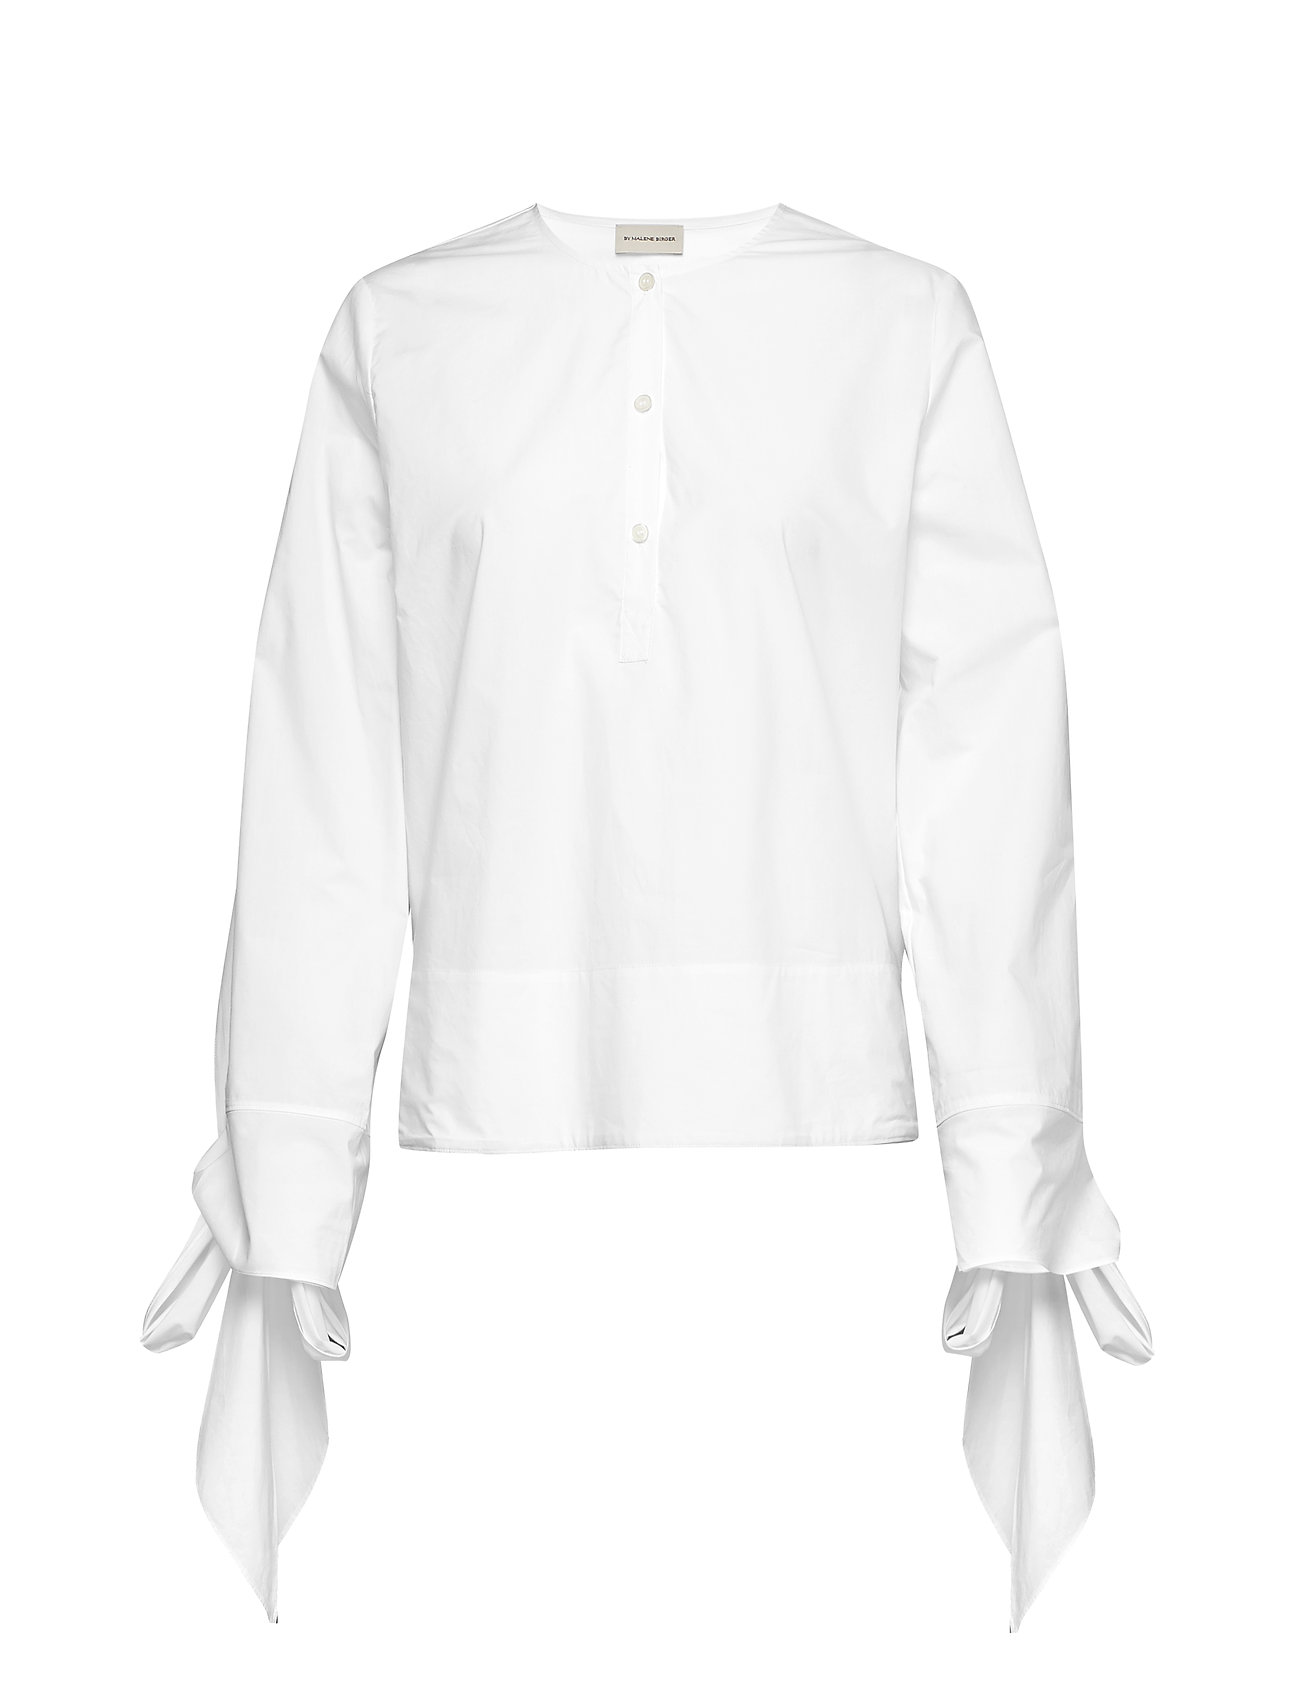 By Malene Birger BLO1006S91 - PURE WHITE